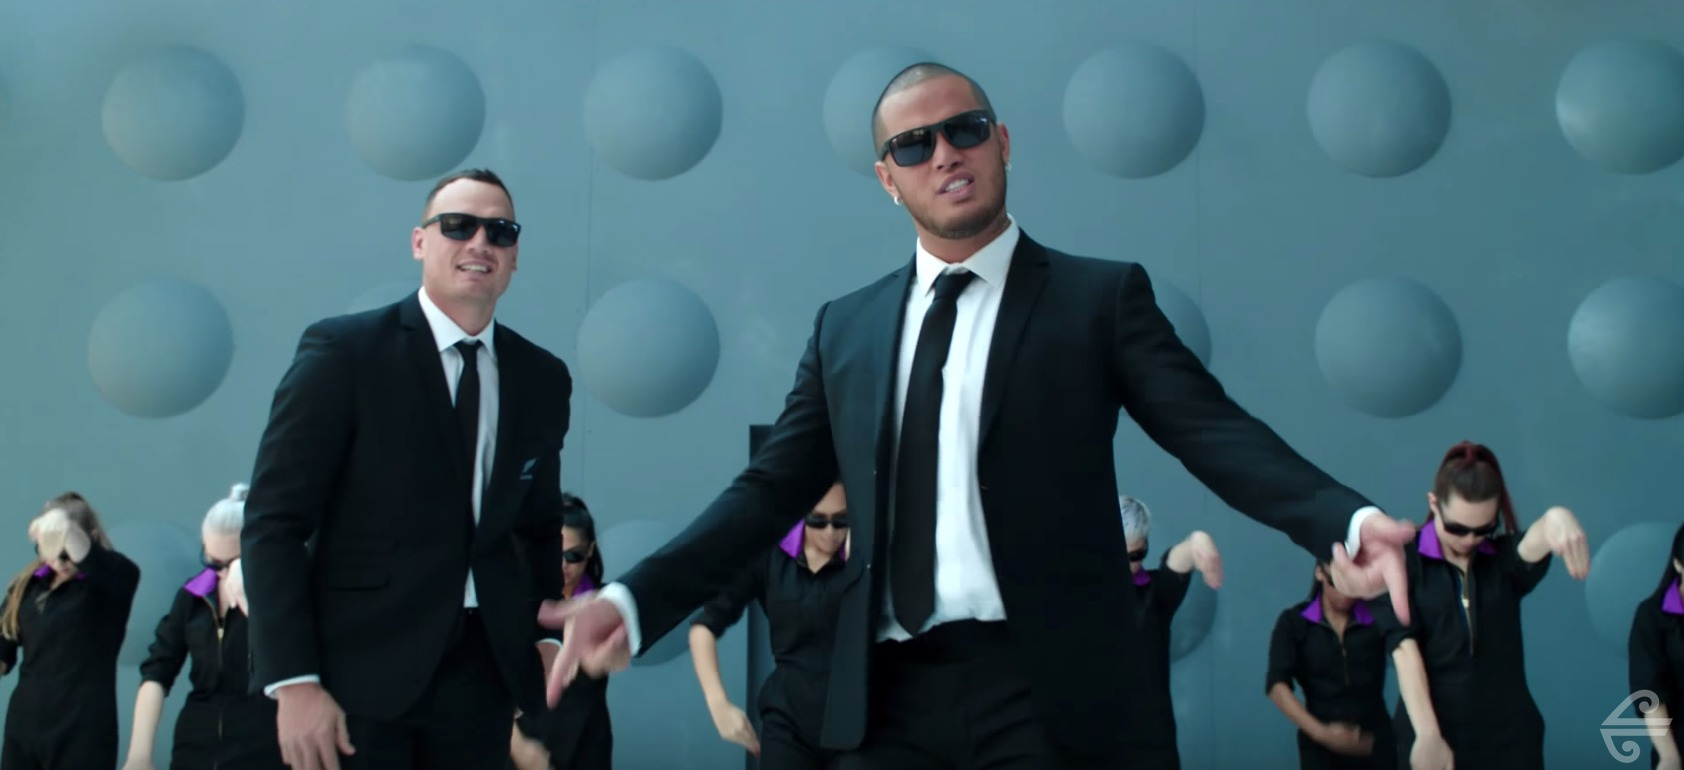 Picture of Air New Zealand Men in Black Safety Video